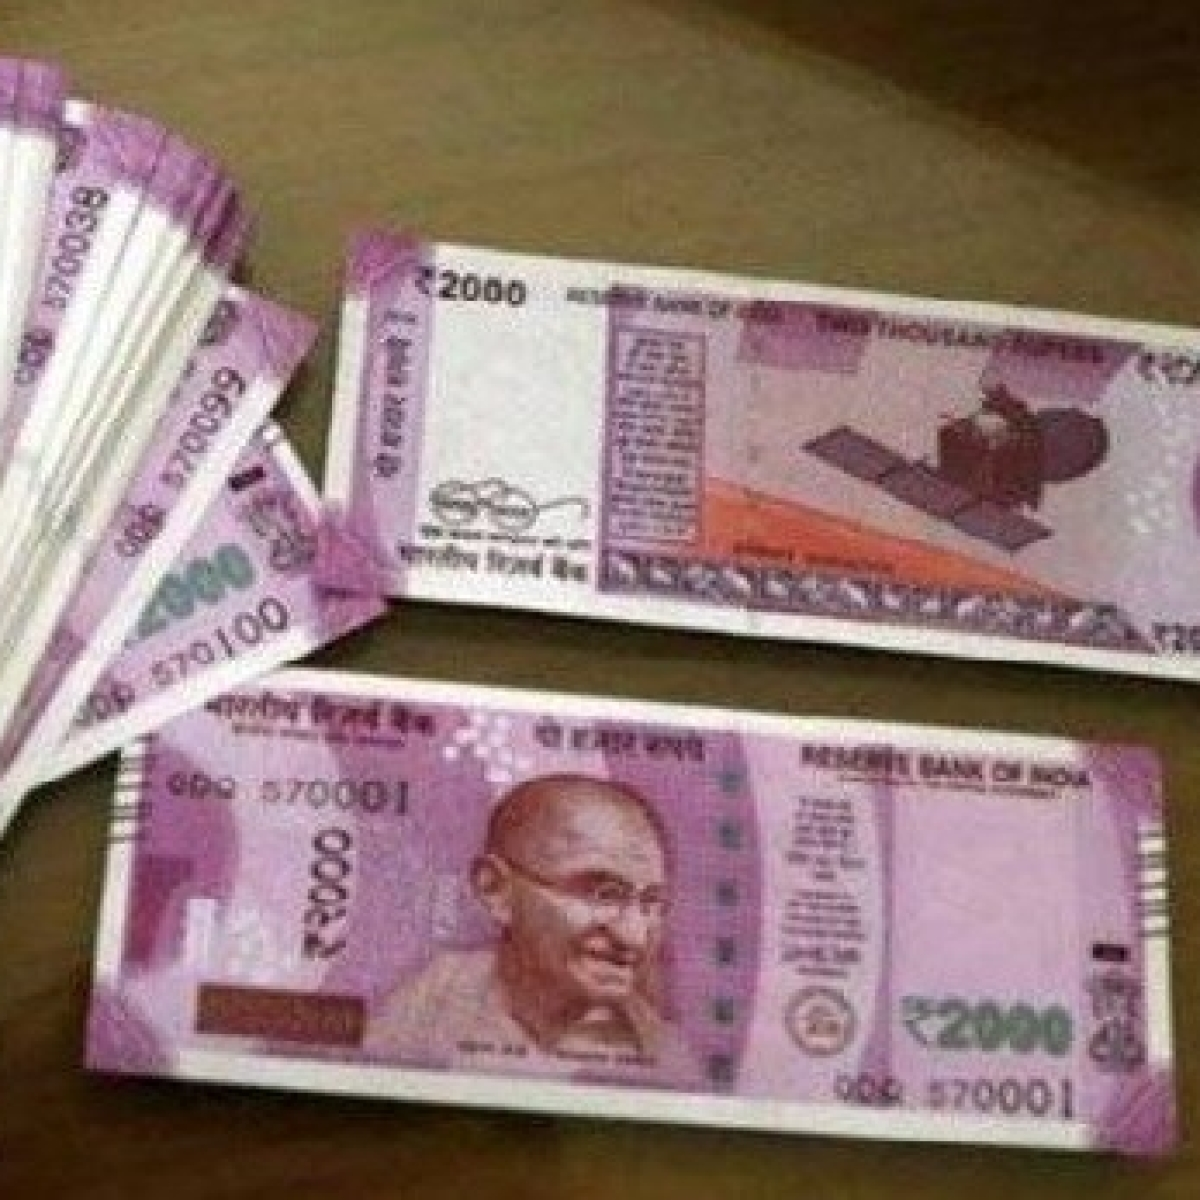 'Invisible ink' may help detect fake currency